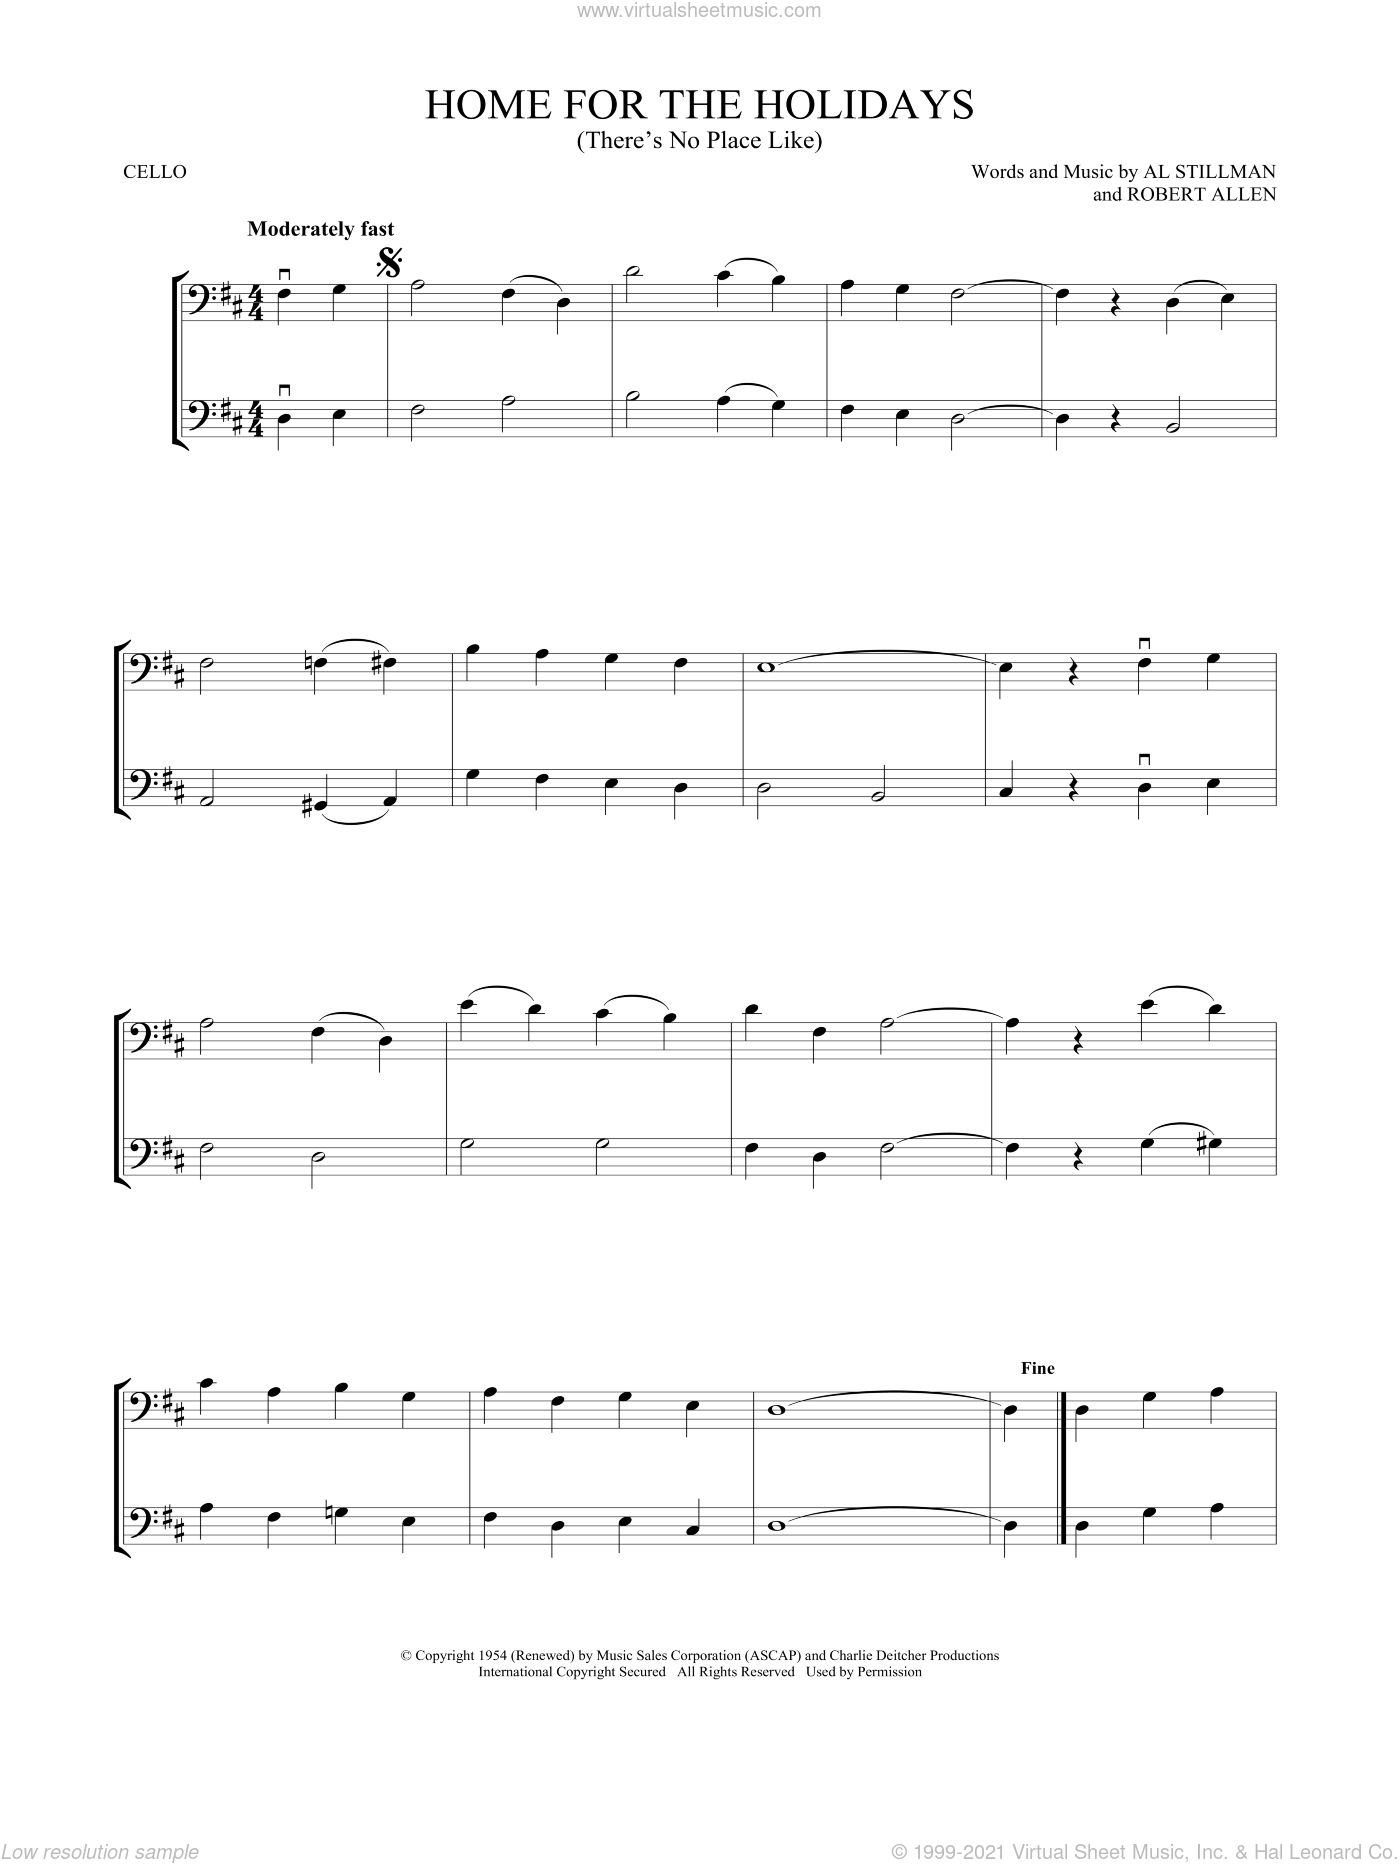 (There's No Place Like) Home For The Holidays sheet music for two cellos (duet, duets) by Perry Como, Al Stillman and Robert Allen, intermediate skill level